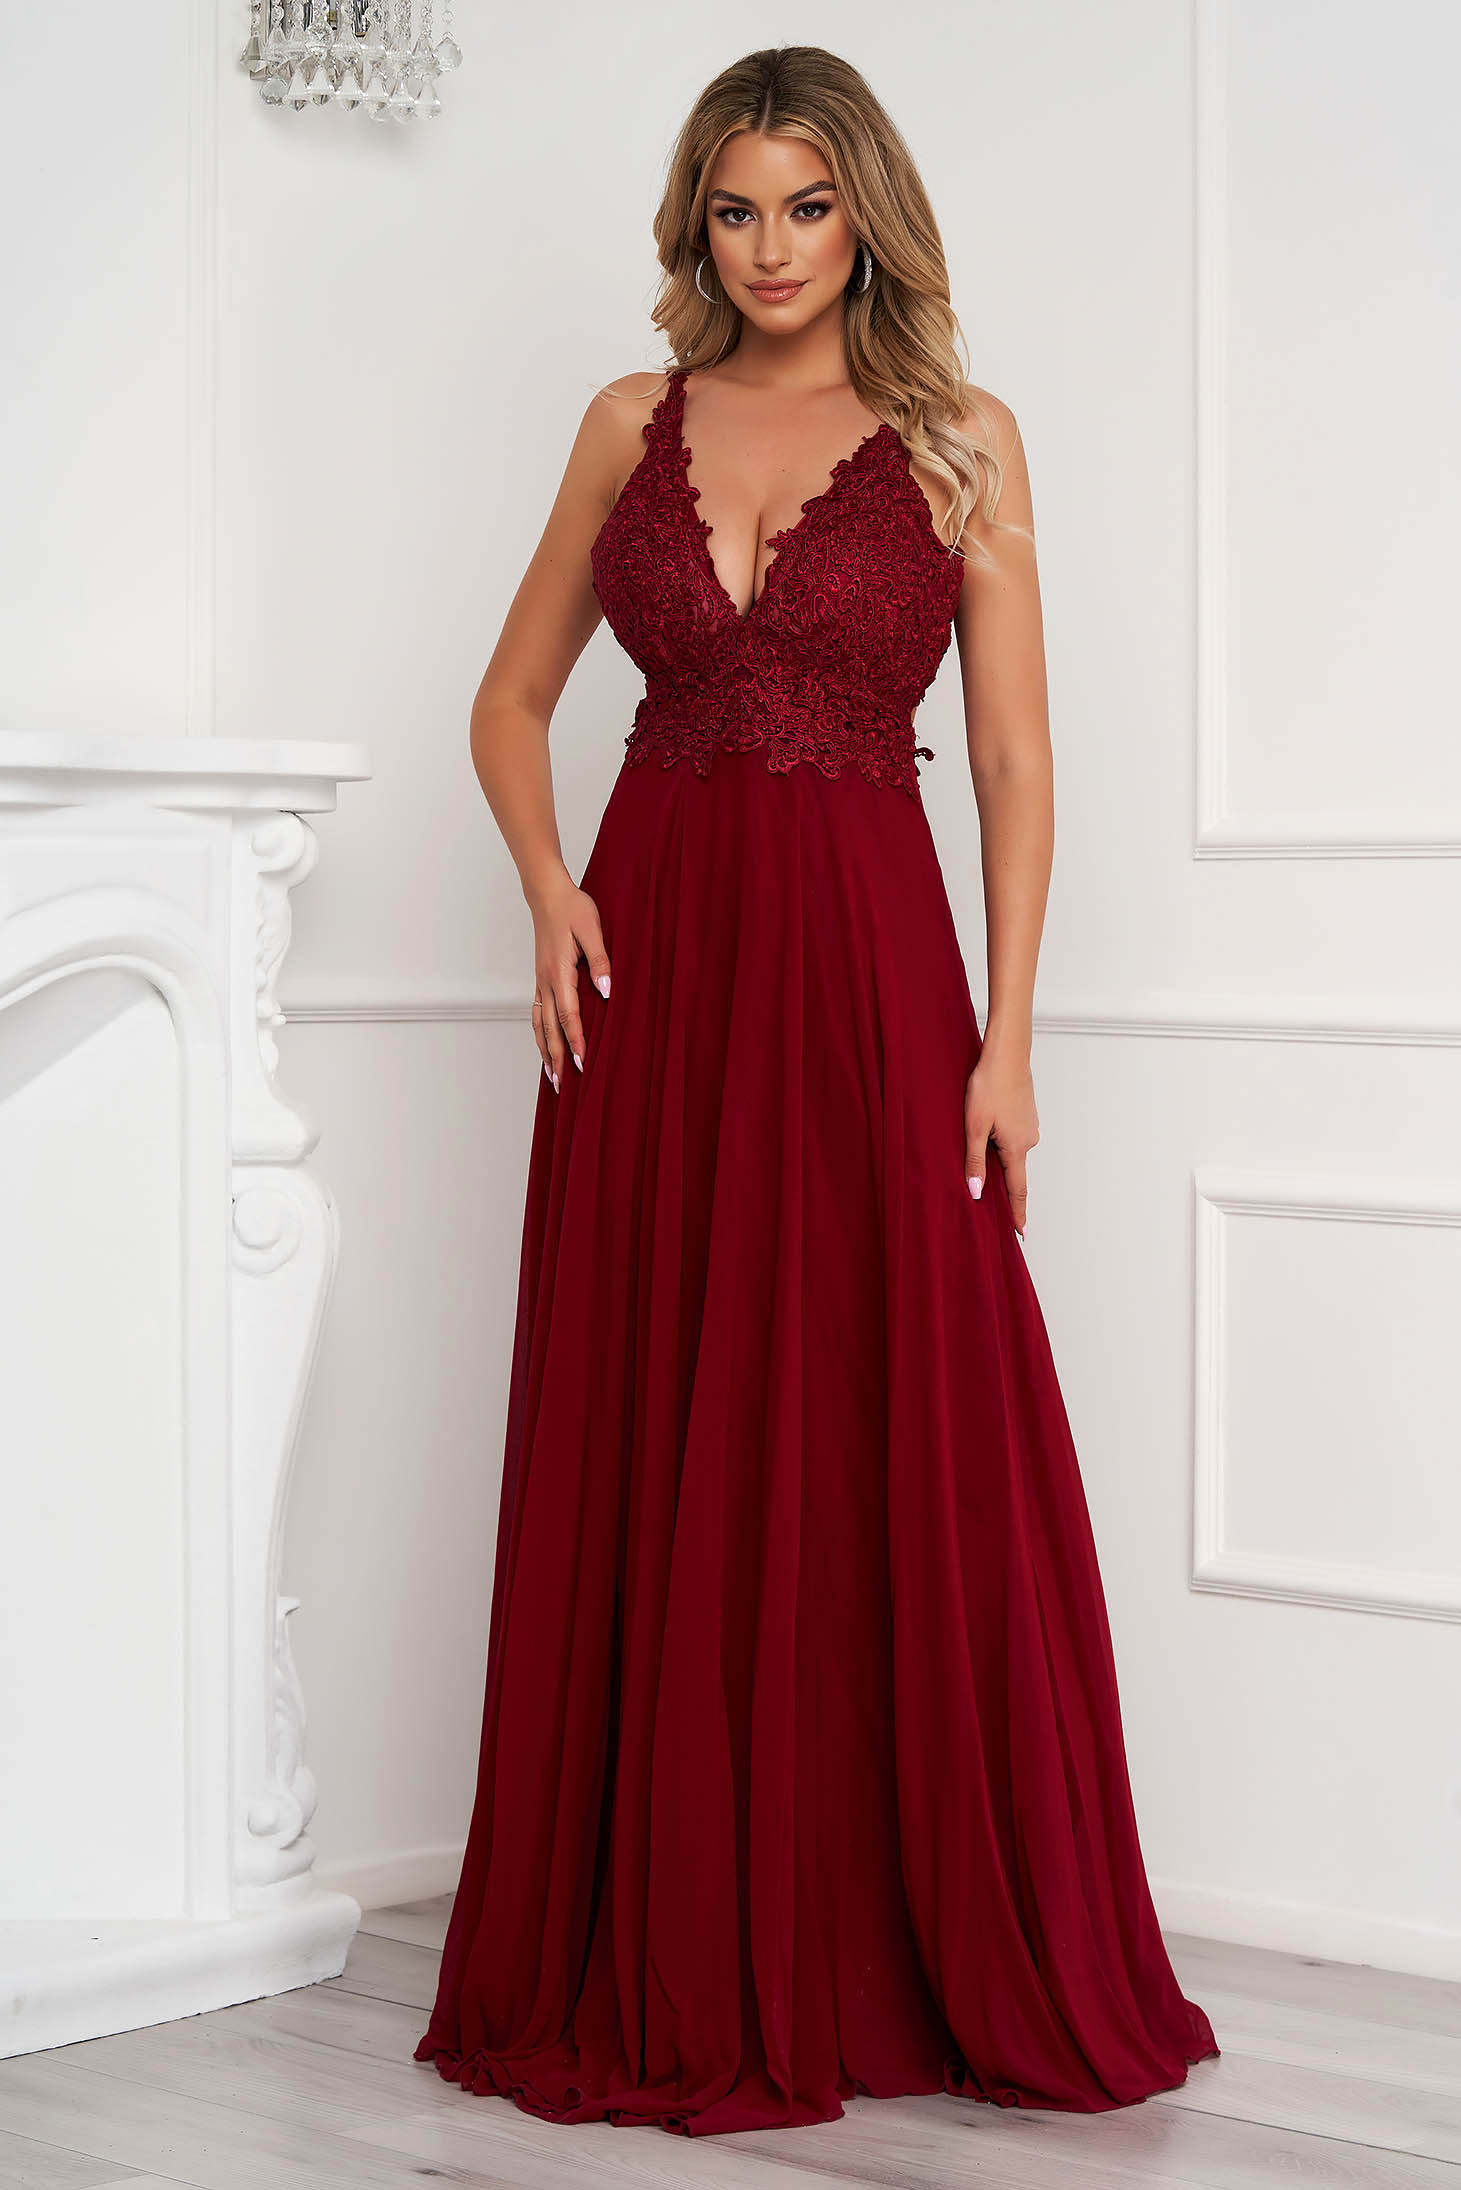 Burgundy dress long occasional from veil fabric bare back with push-up cups